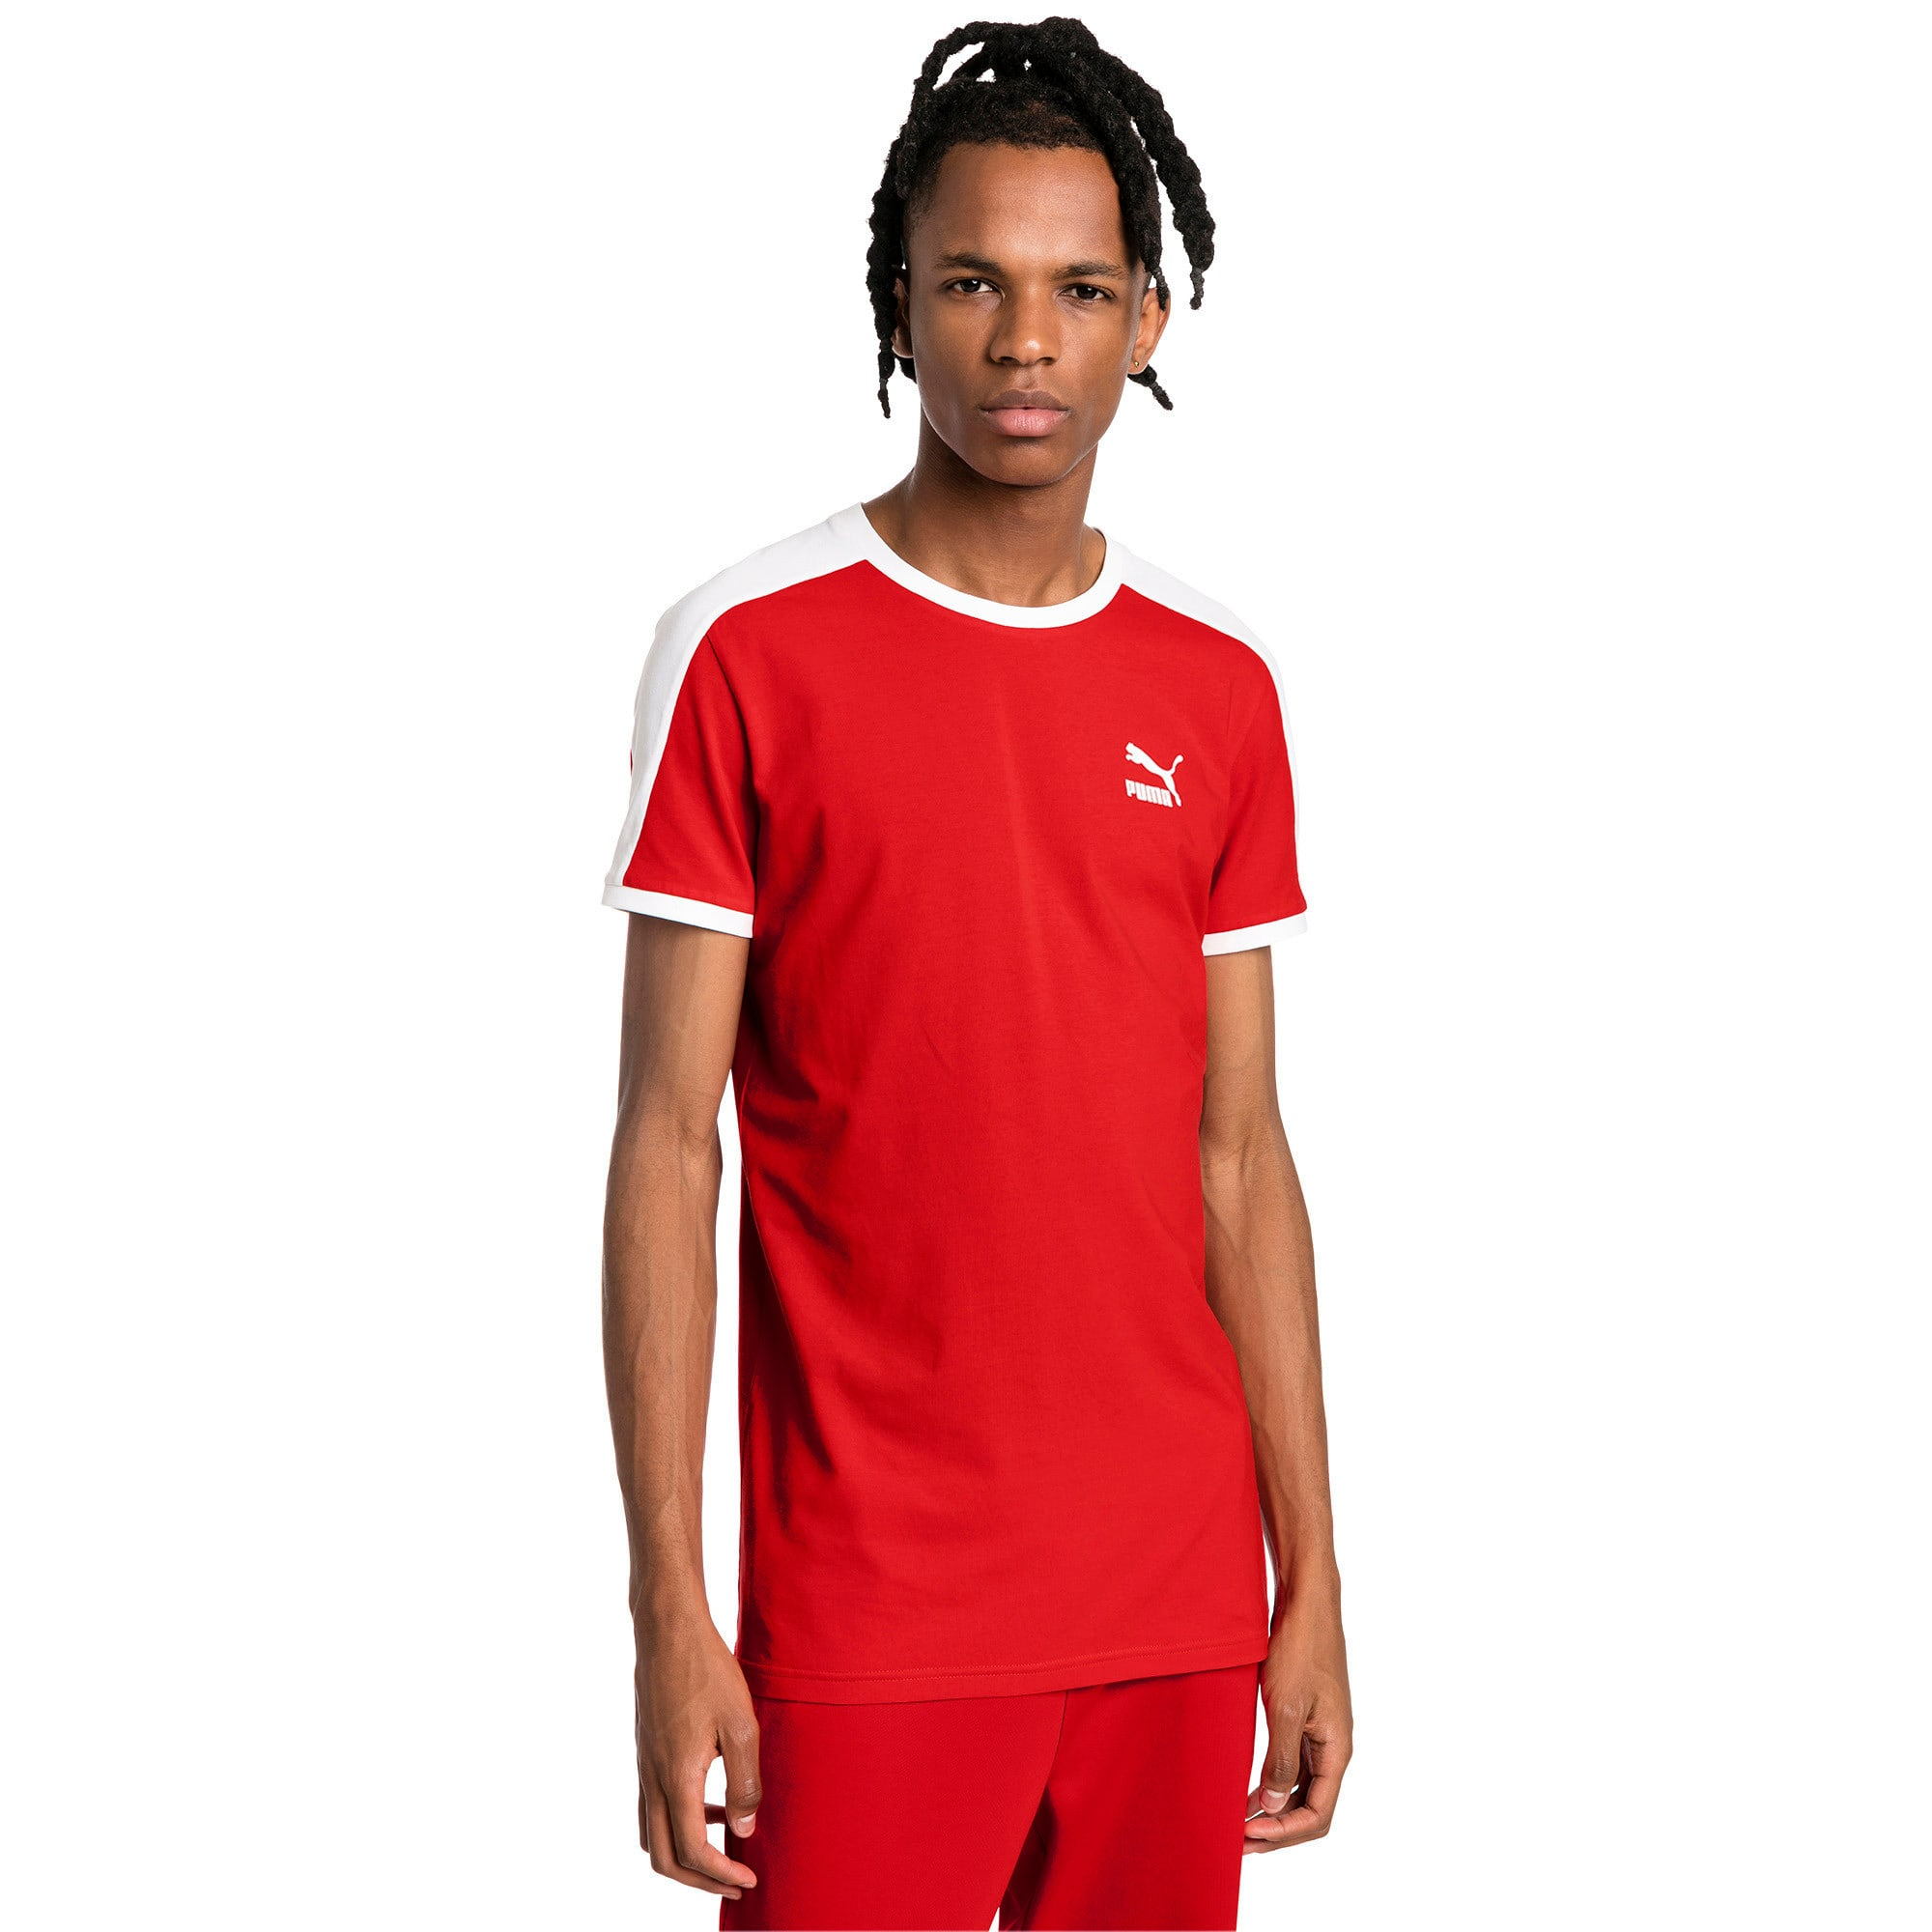 Thumbnail 1 of Iconic T7 Slim Men's Tee, High Risk Red, medium-IND